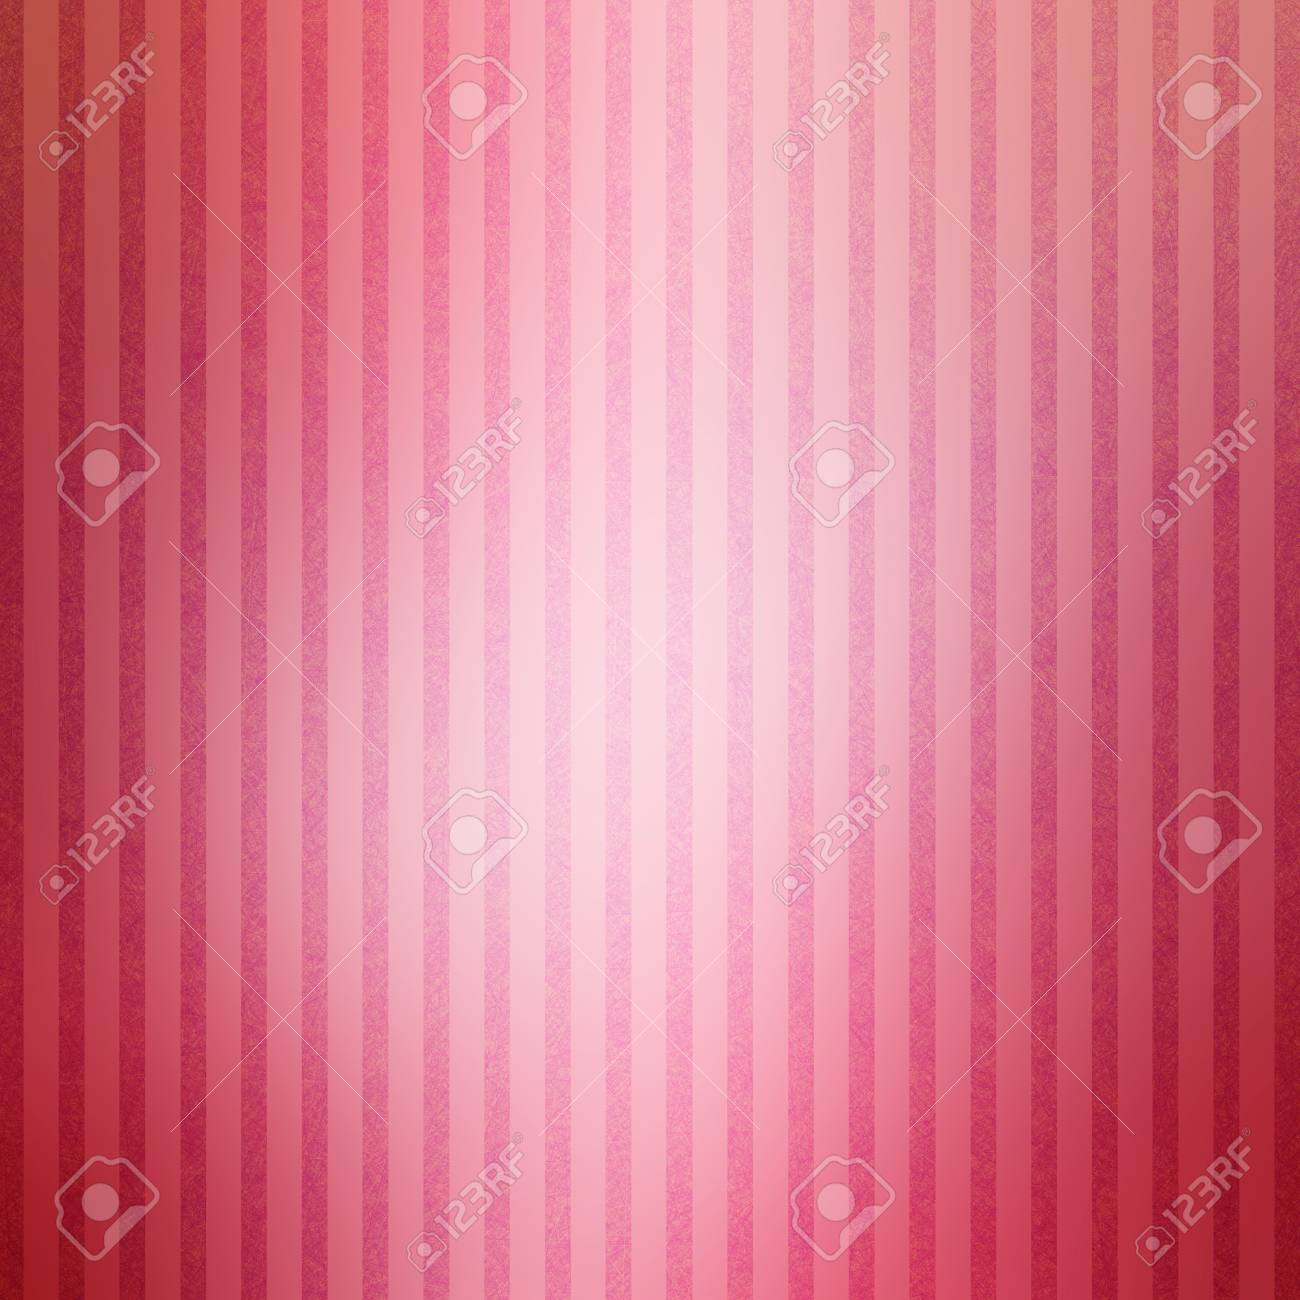 Pretty Shiny Striped Background With White Glossy Center And Textured Stripes In Soft Colors Of Rose